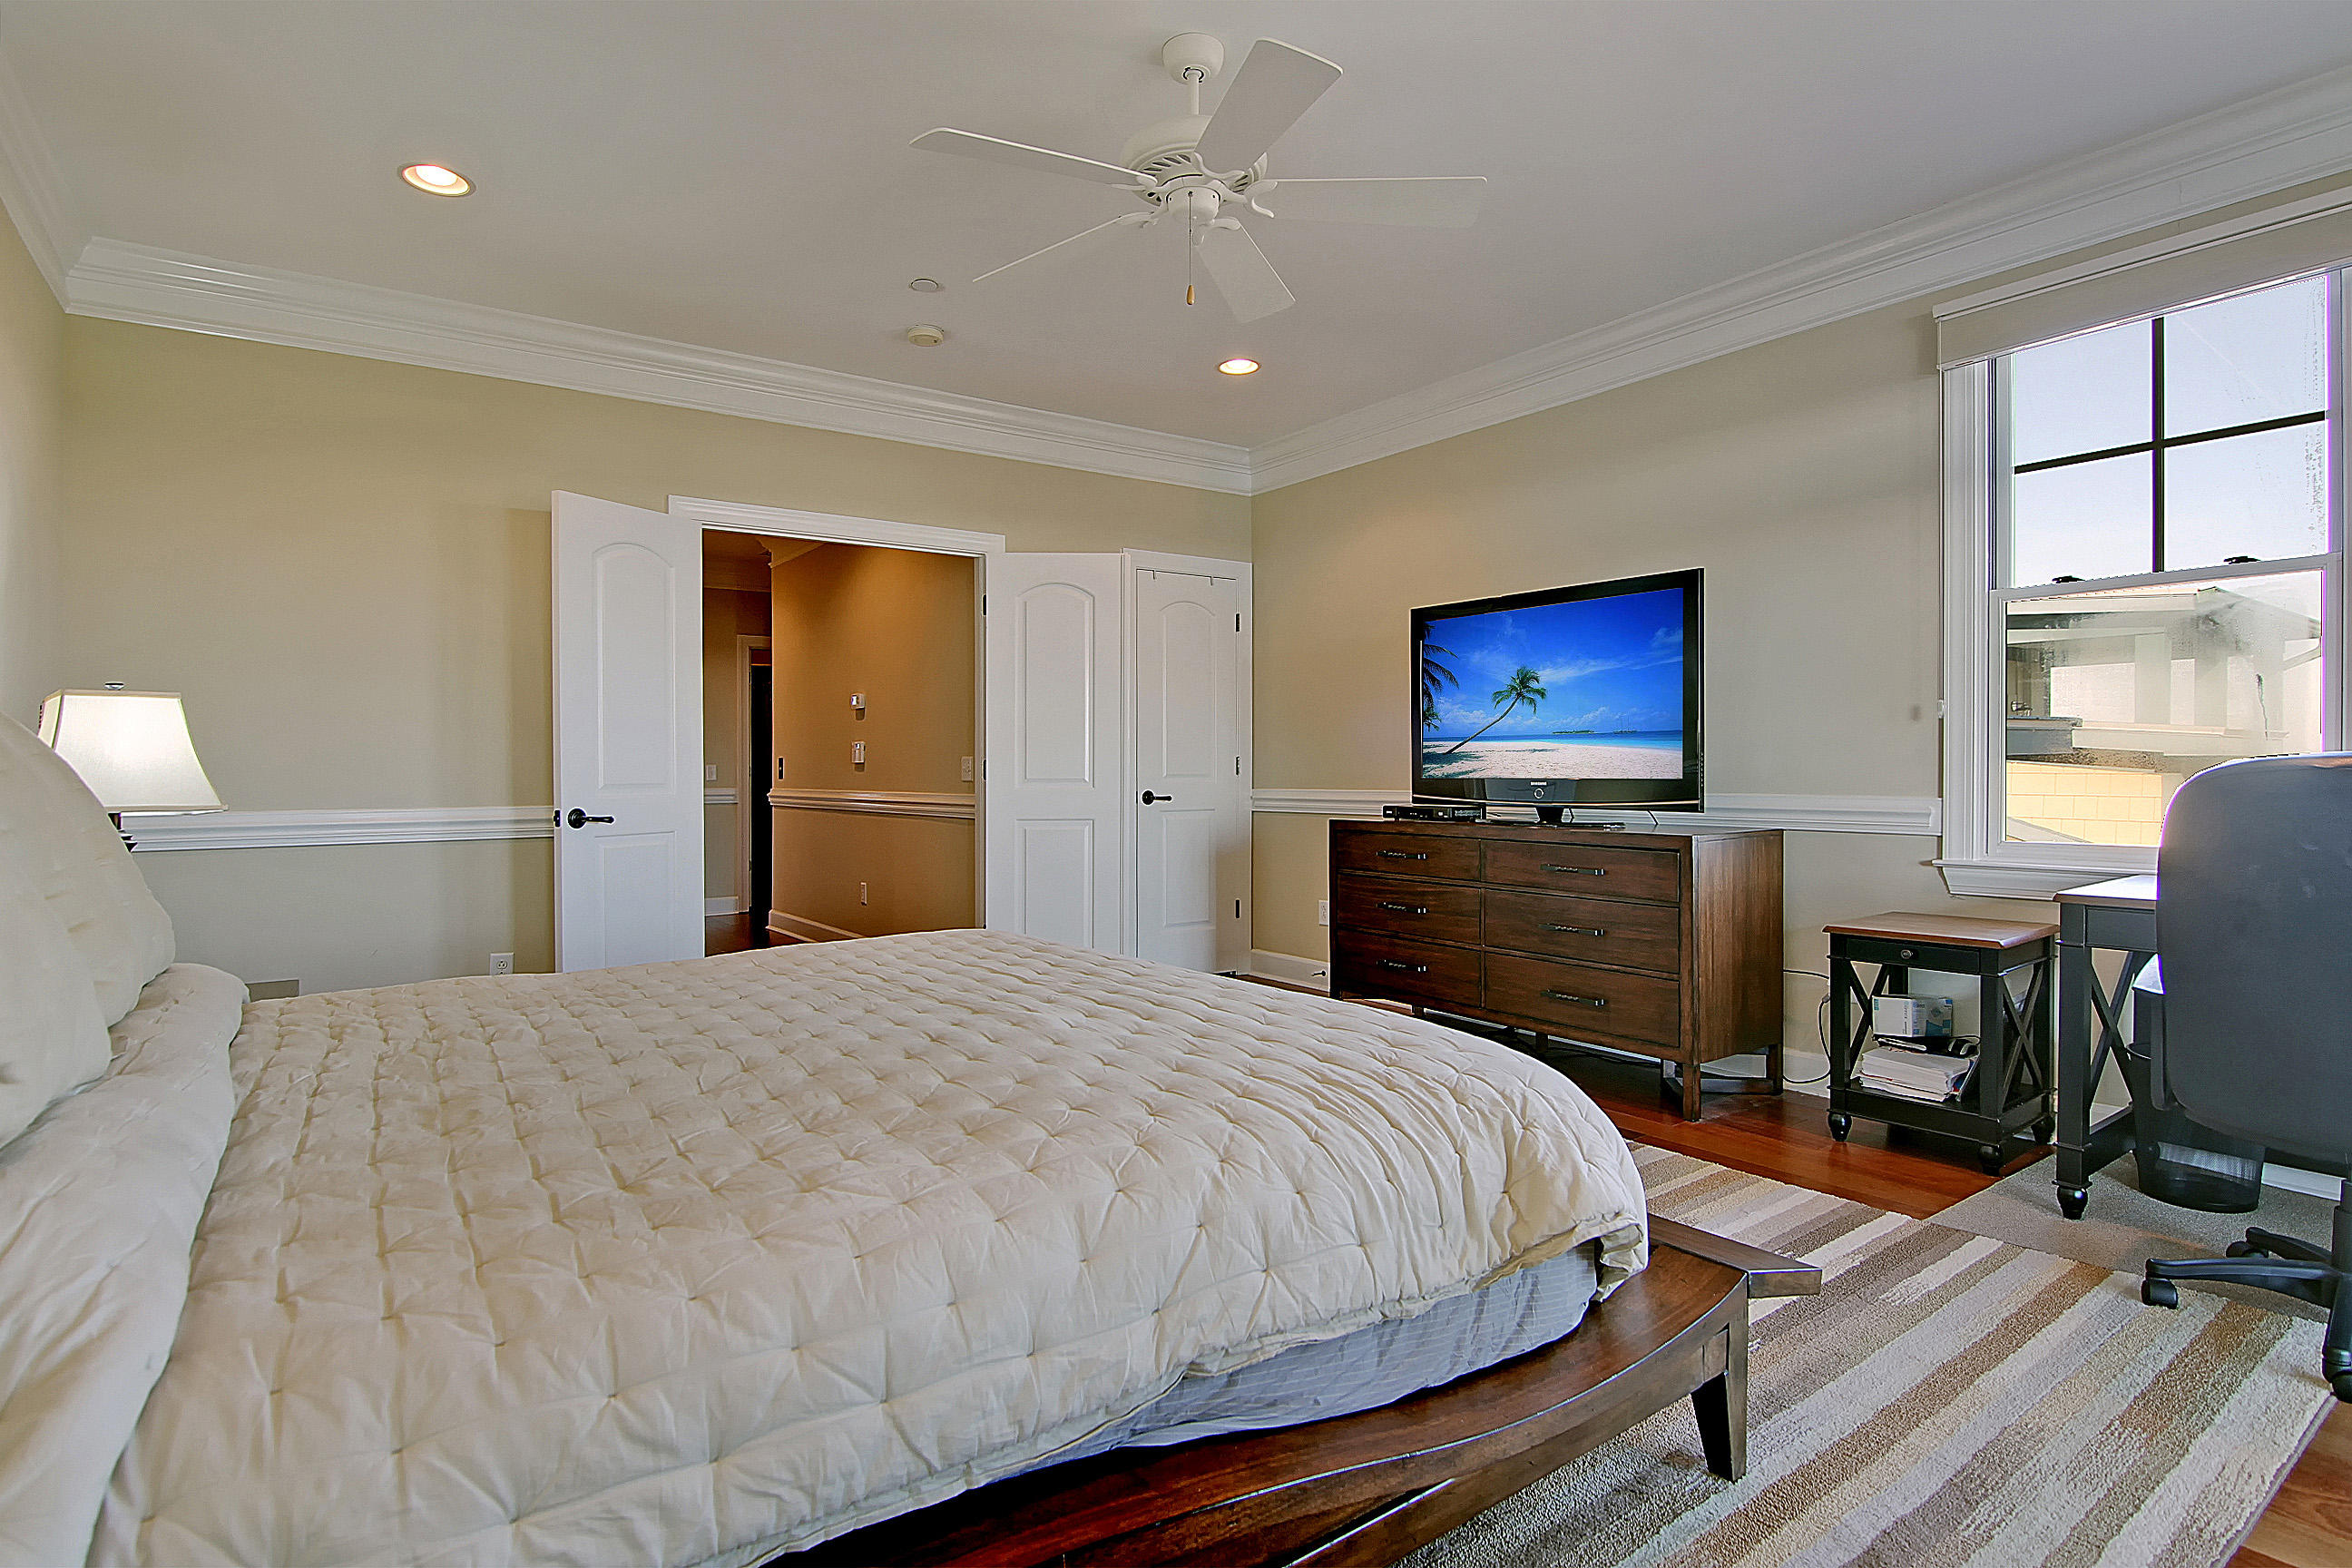 Sawyer's Landing Homes For Sale - 973 Cove Bay, Mount Pleasant, SC - 14